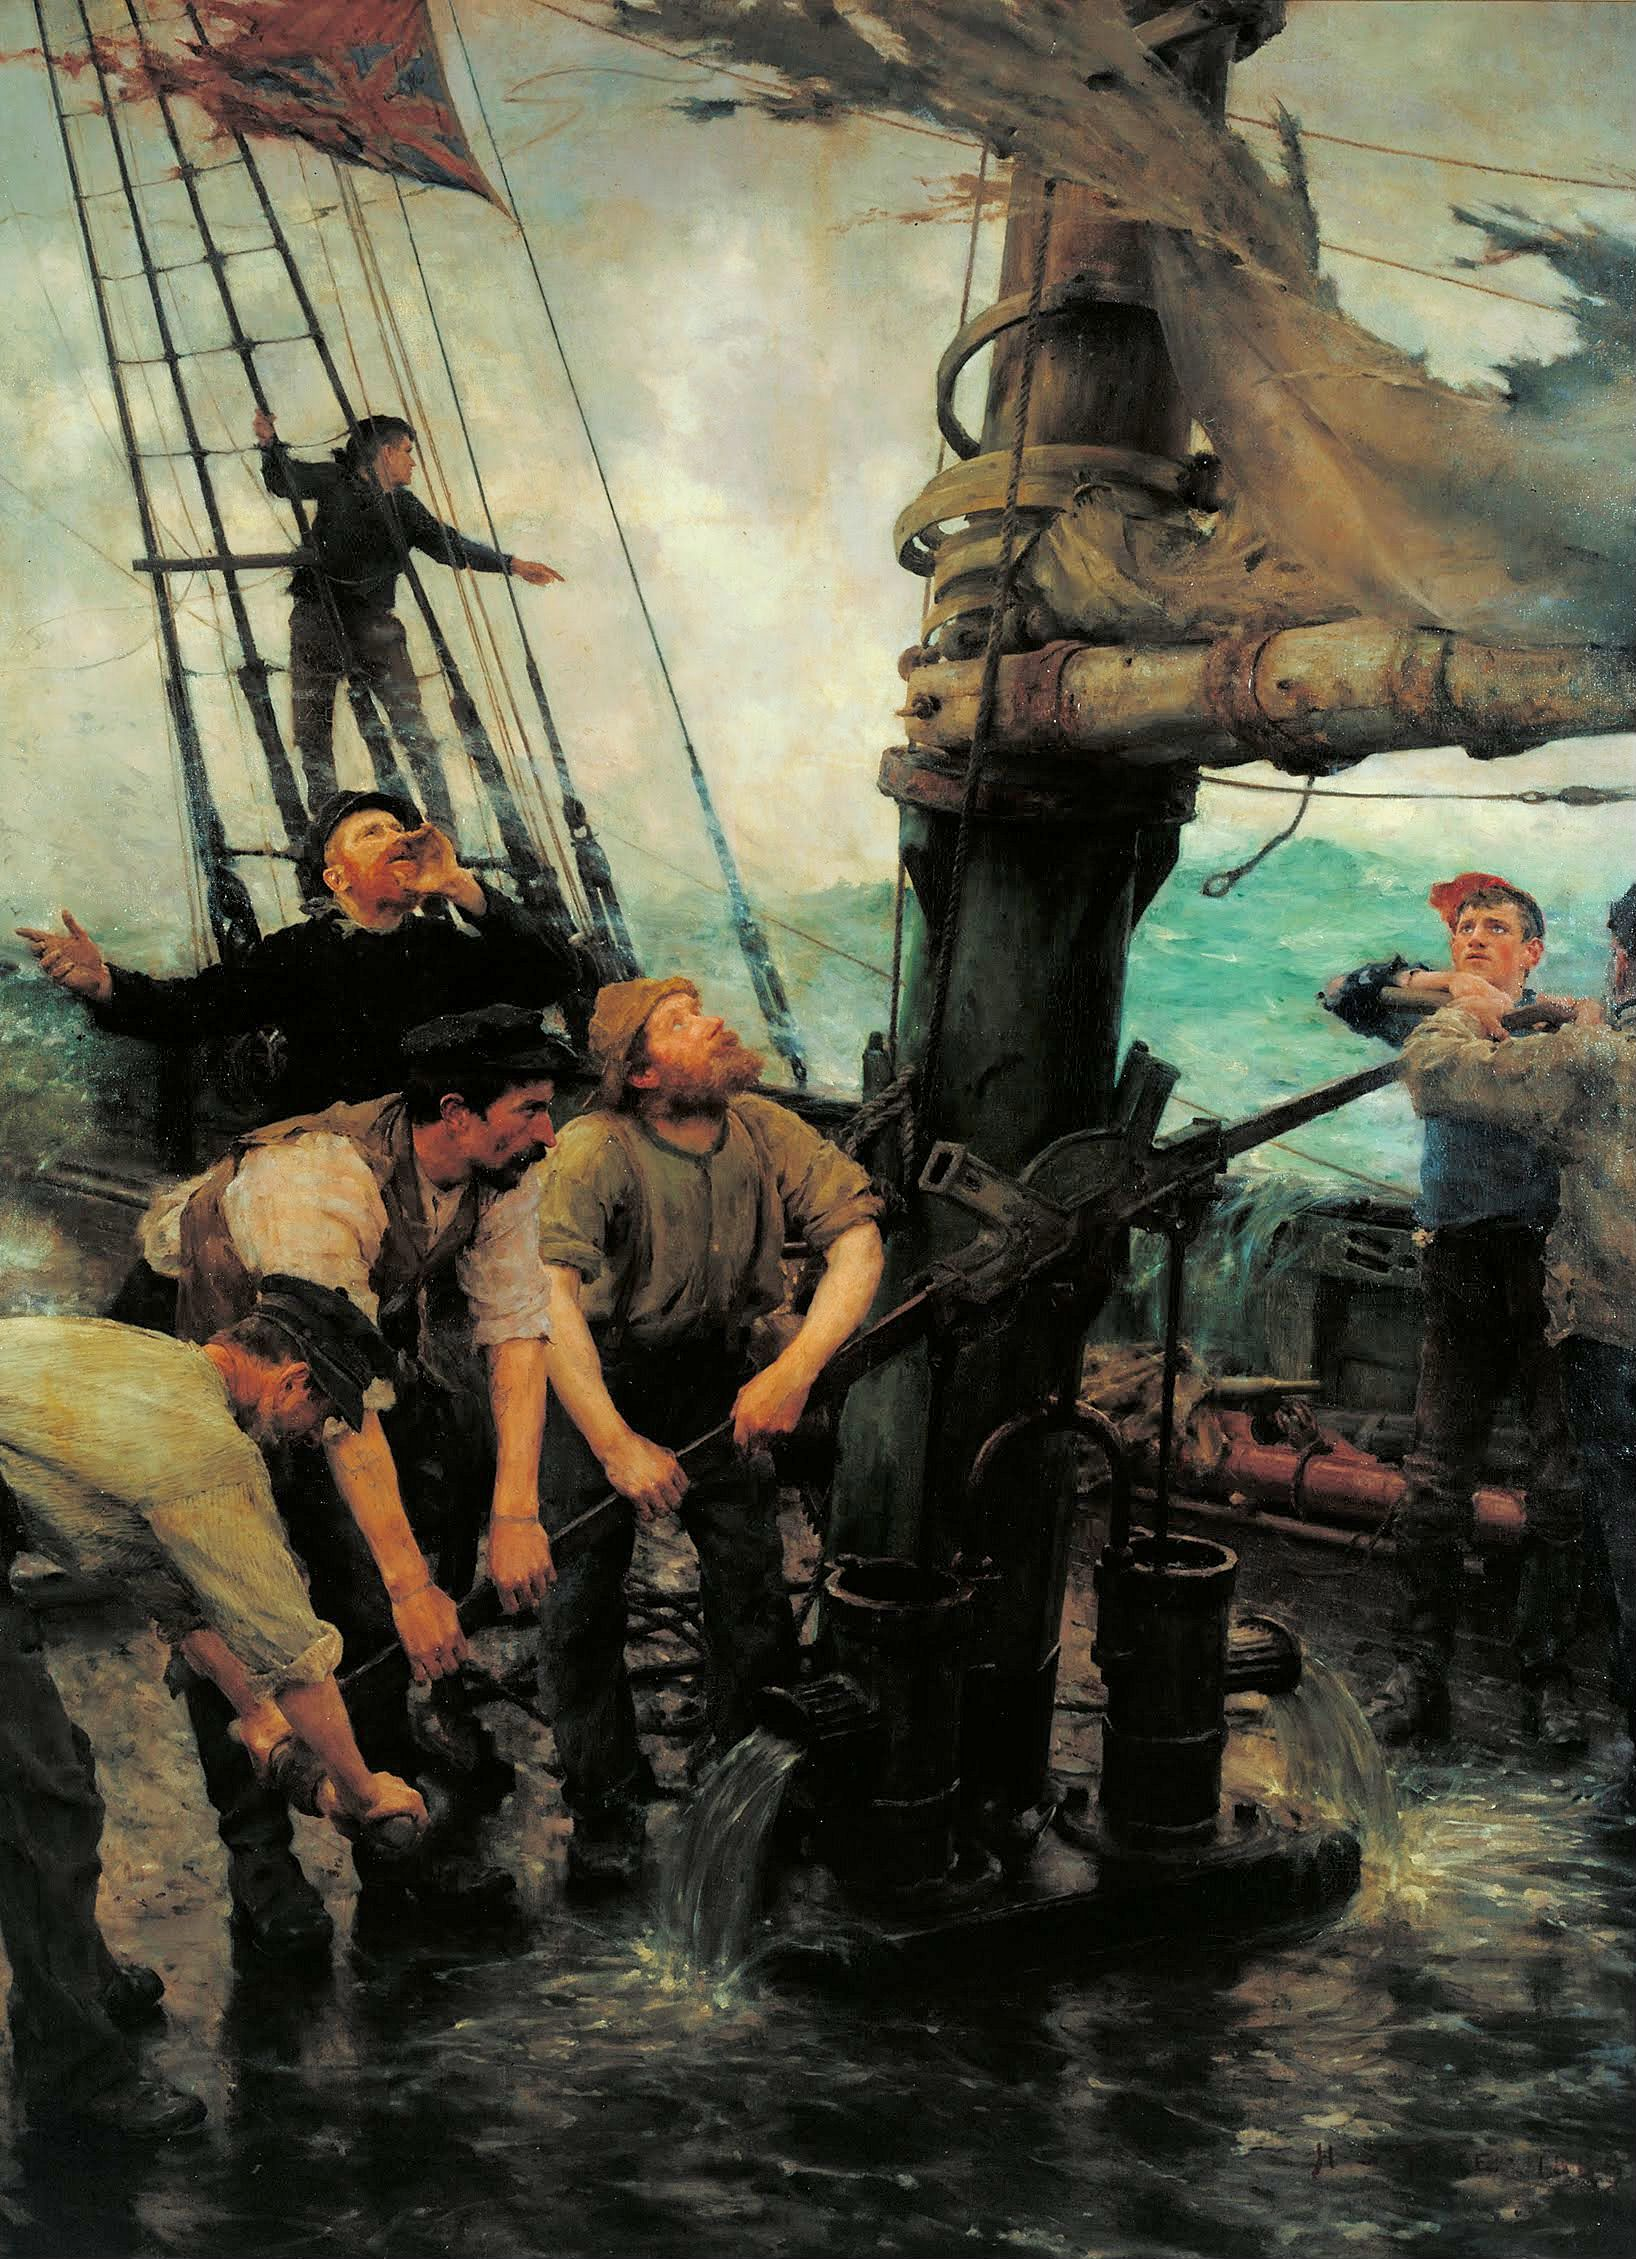 All Hands to the Pumps, by Henry Scott Tuke, c. 1888